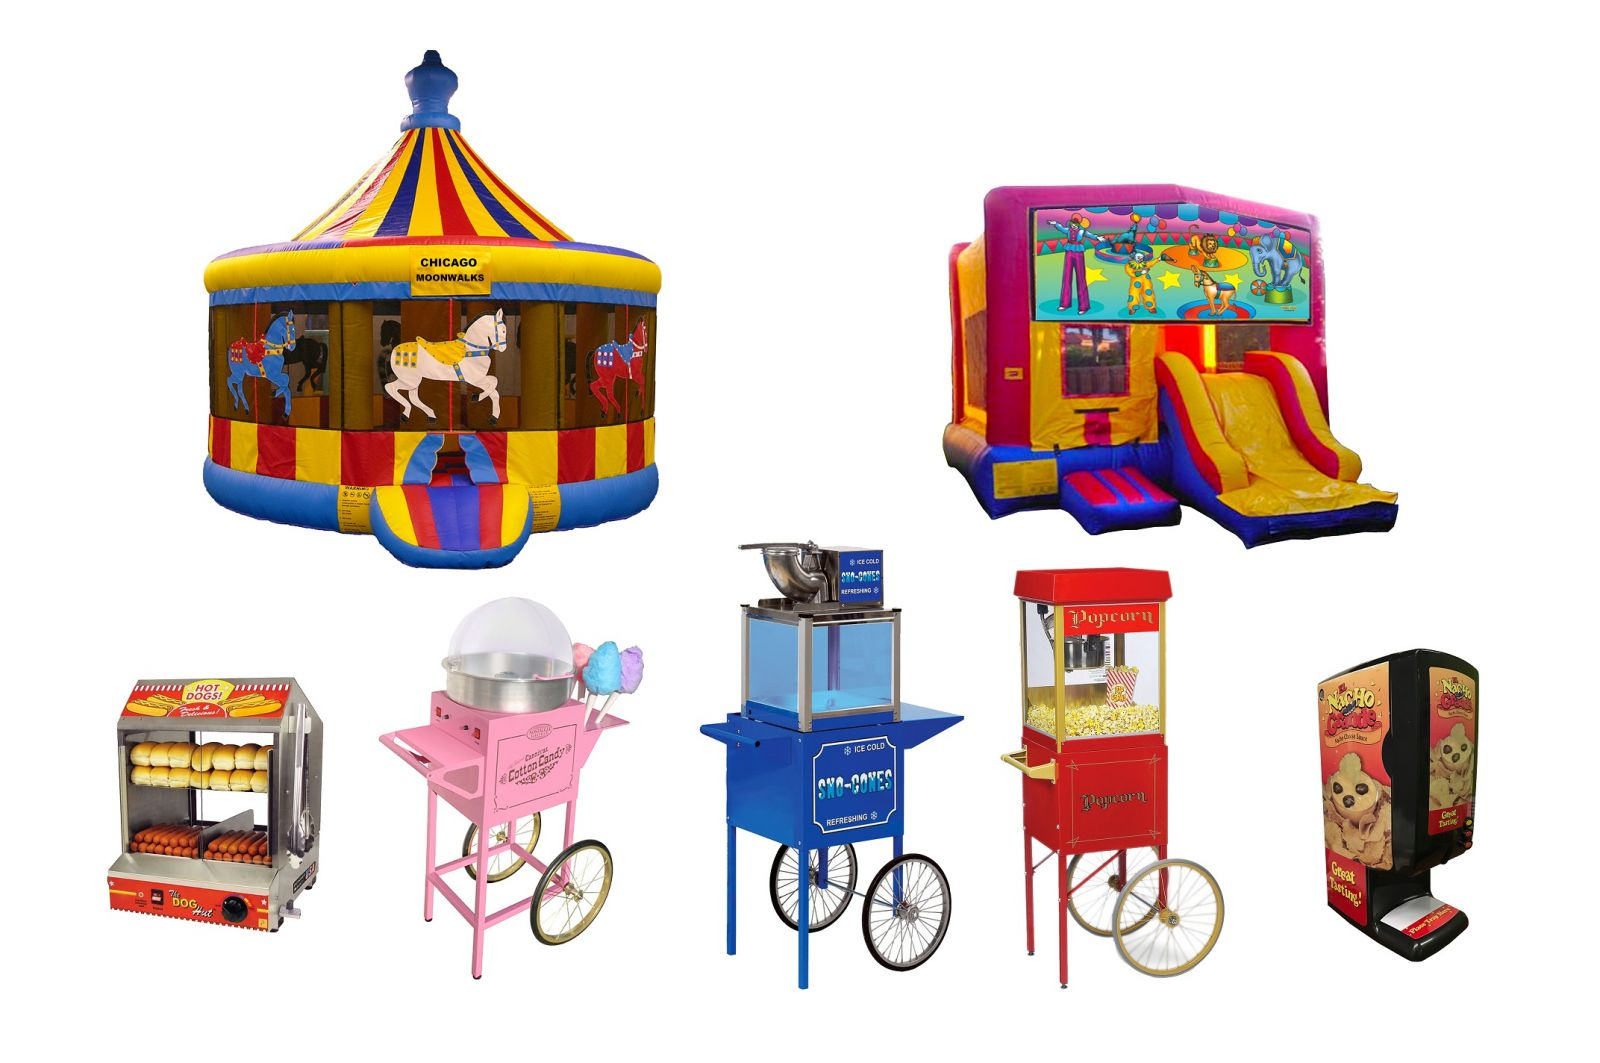 Circus Themed Bounce House Combo Rentals in Chicago Illinois